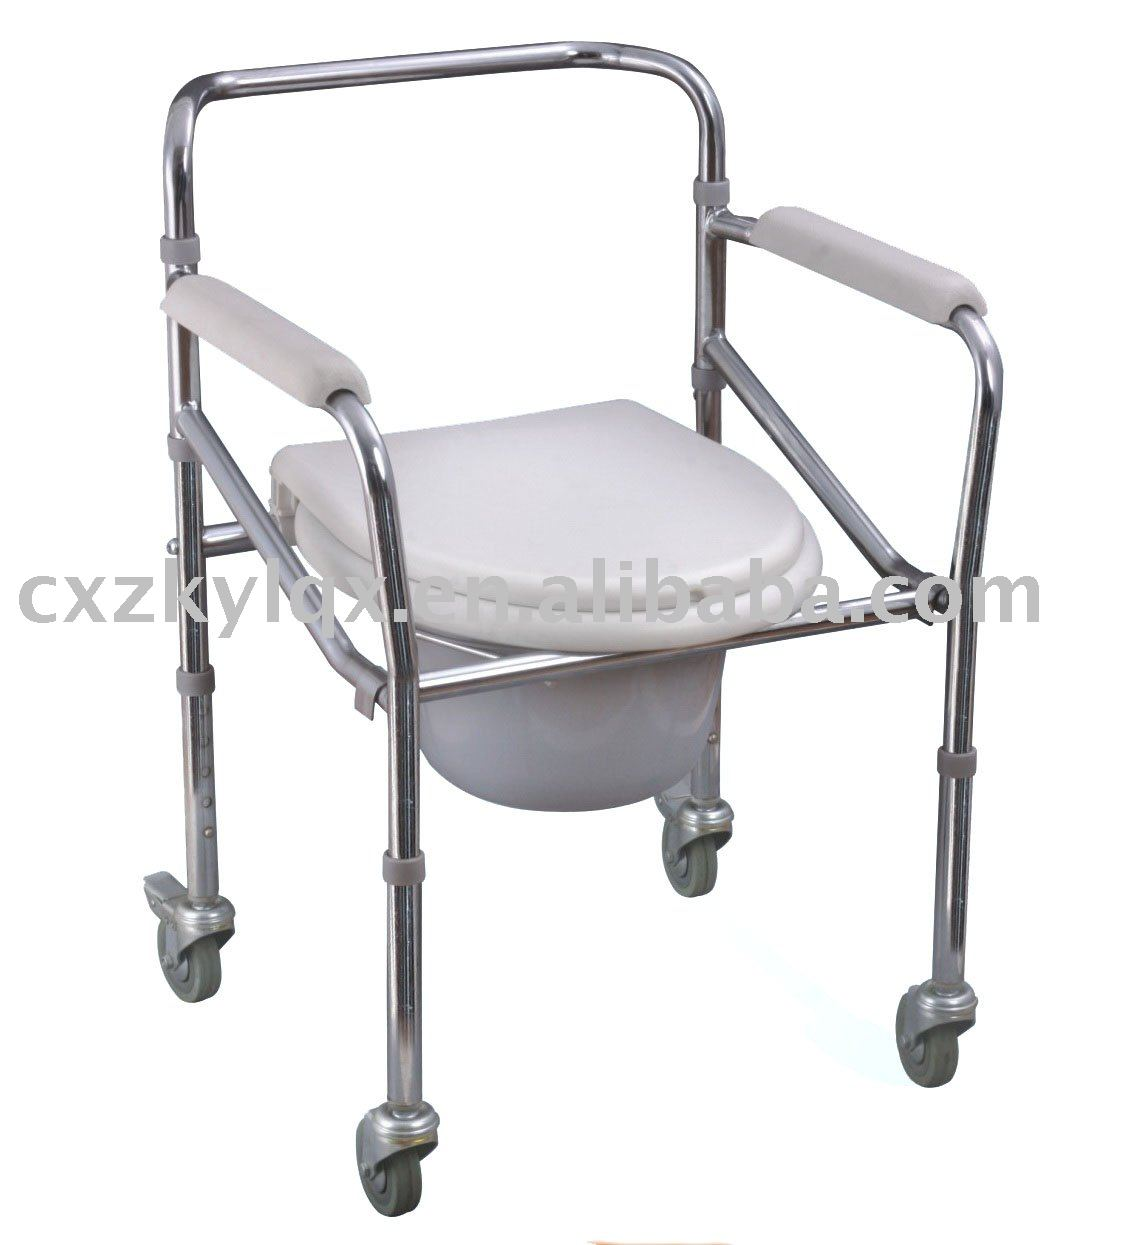 Cheapest Toilet Commode Chair, Cheapest Toilet Commode Chair ...